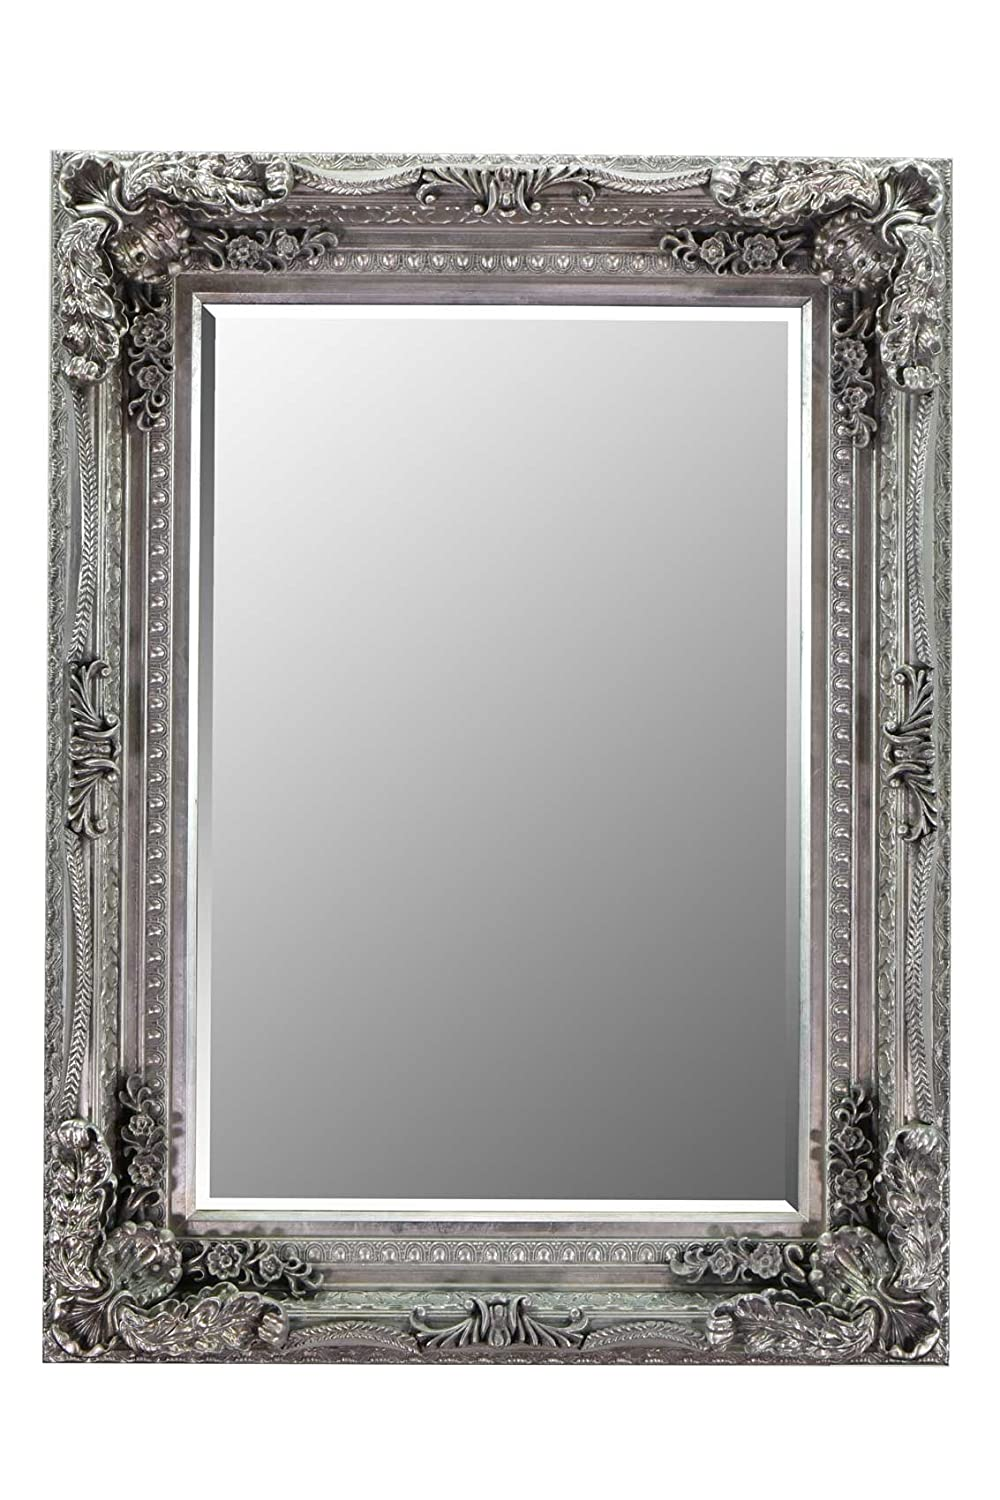 4Ft X 3Ft 120cm X 90cm Large Silver Rectangle Antique Style Big Wall Mirror MirrorOutlet